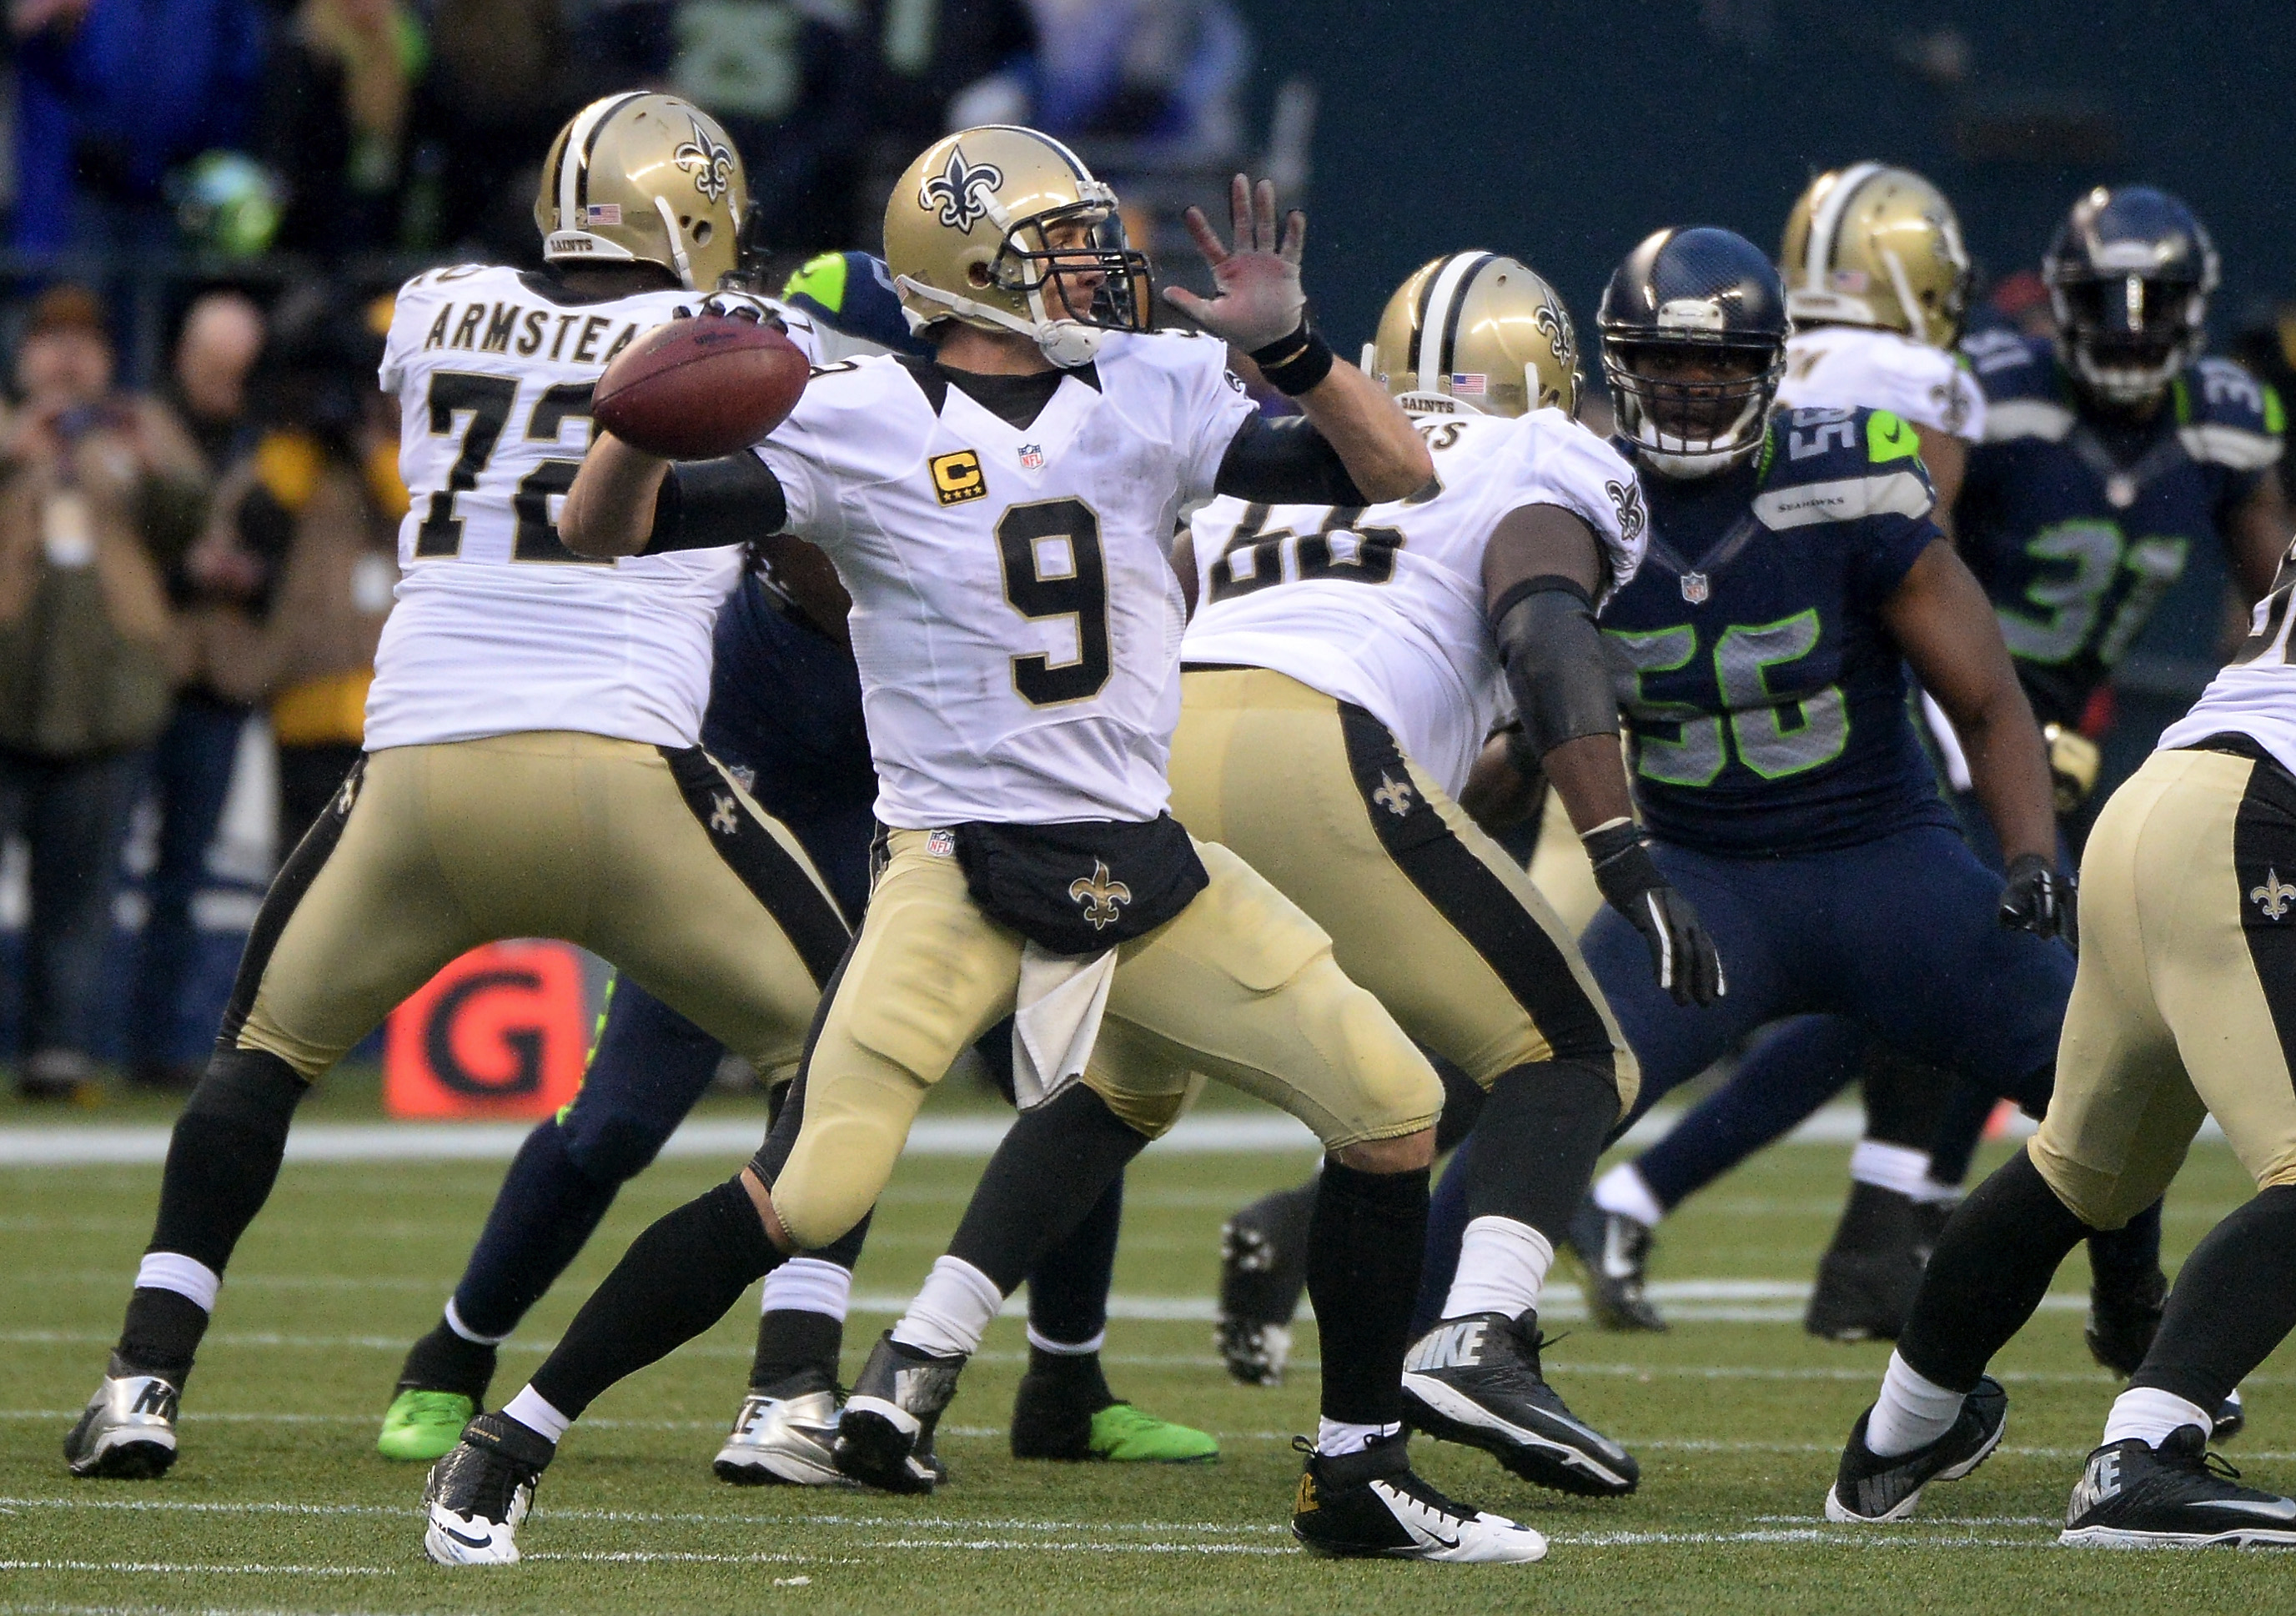 Drew Brees Top 5 Players You Need To Select In Your Fantasy Draft